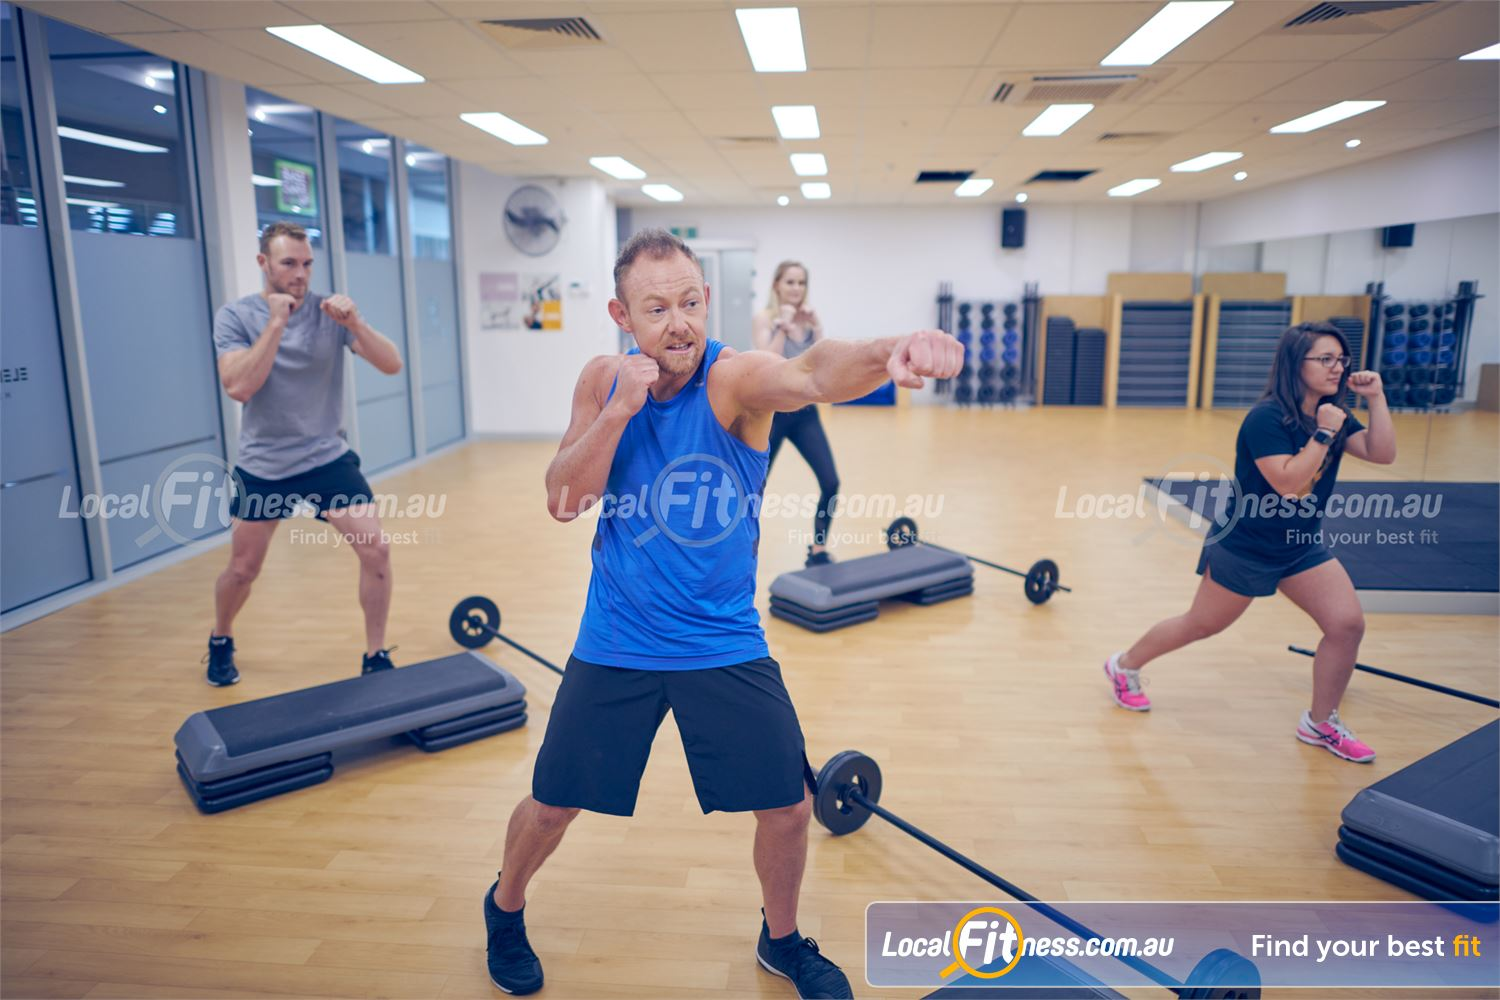 Element Fitness Health Club Near Vermont Get a energetic workout with classes inc. Les Mills, Nunawading boxing and more.